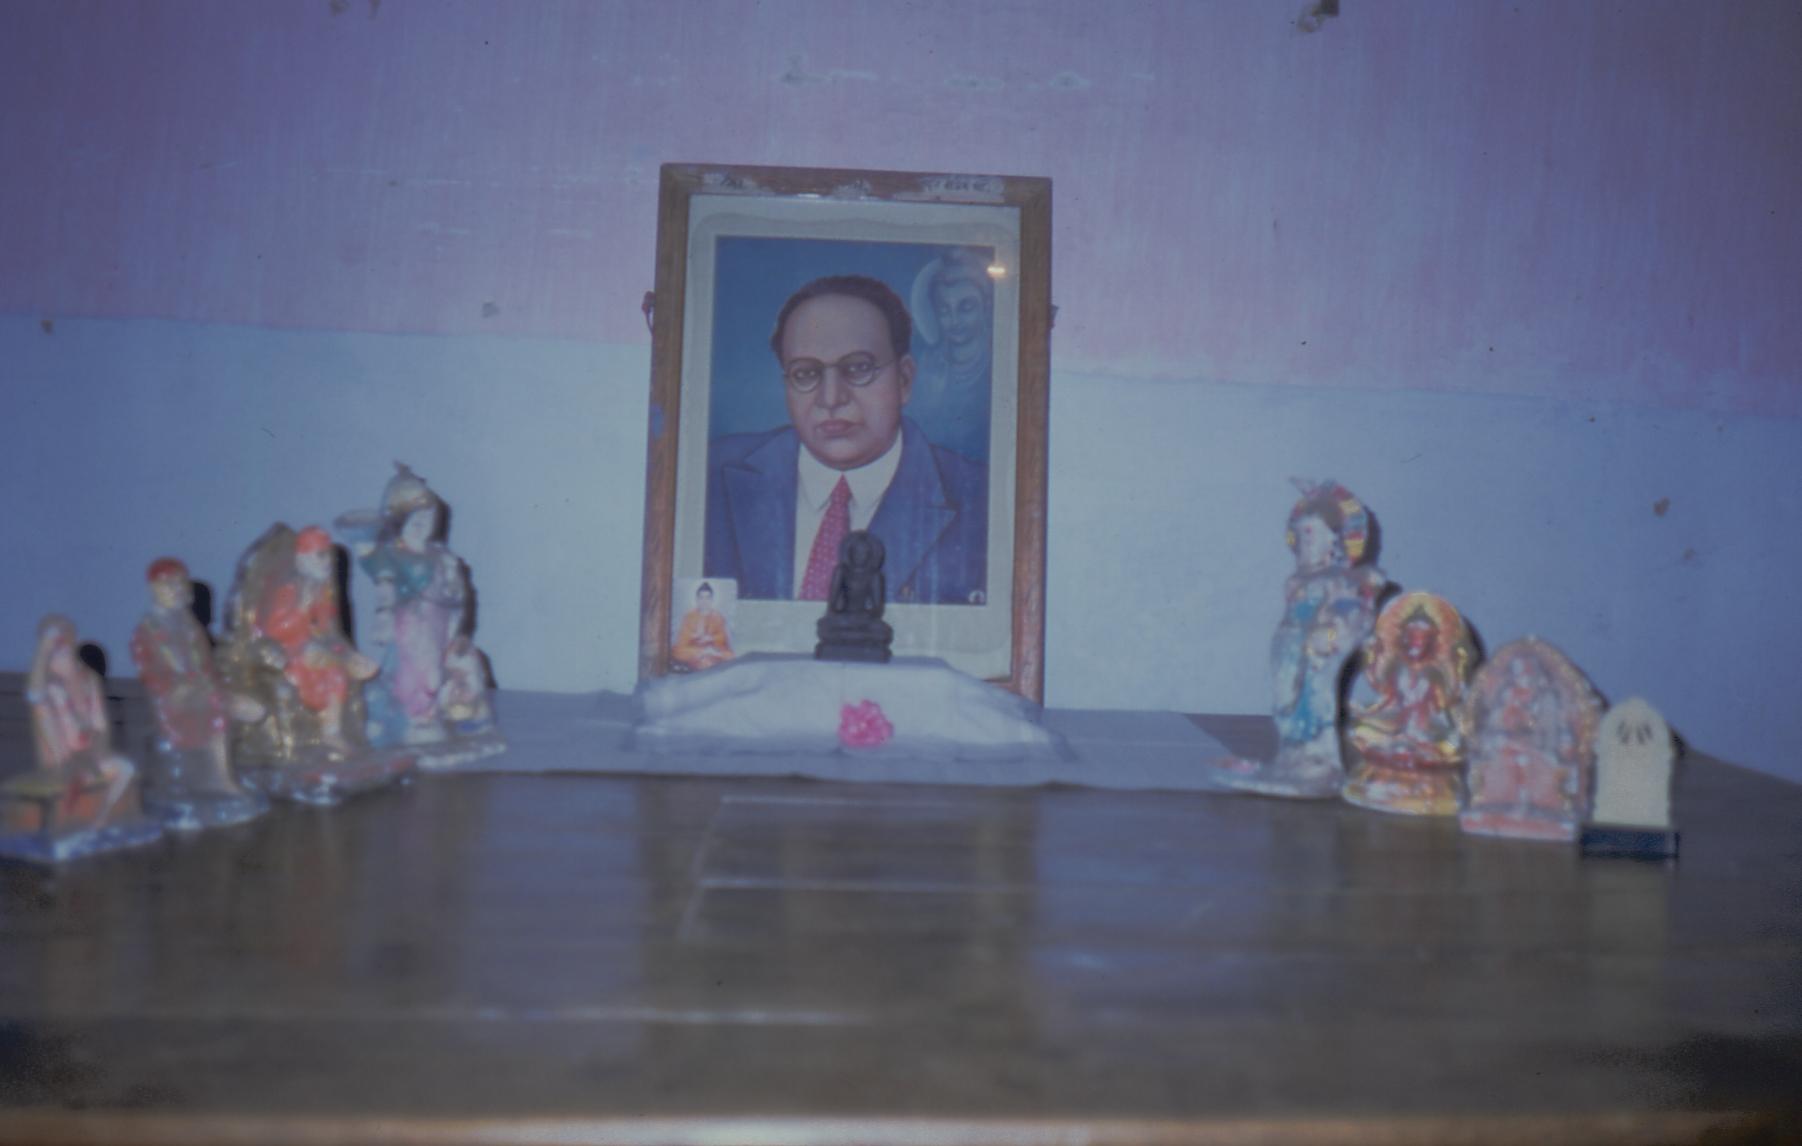 I remember this situation very well. We travelled in many villages and so on and we found there was a lot of confusion about Buddhism. Some may misunderstand what I say, but people were worshipping the old gods and trying to understand Buddhism at the same time. Ambedkar had been very categorical, he said look you can't do both. If you continued worshipping the old Hindu gods, that meant implicitly accepting your status in Hinduism. It was just a bit like a tug of war you know, if the sides are equally pulled then you can't really make progress. So without being antagonistic to the Hindu gods we just made it clear that you've got to choose. In a few places people would bring out their old gods, and this was one such place.